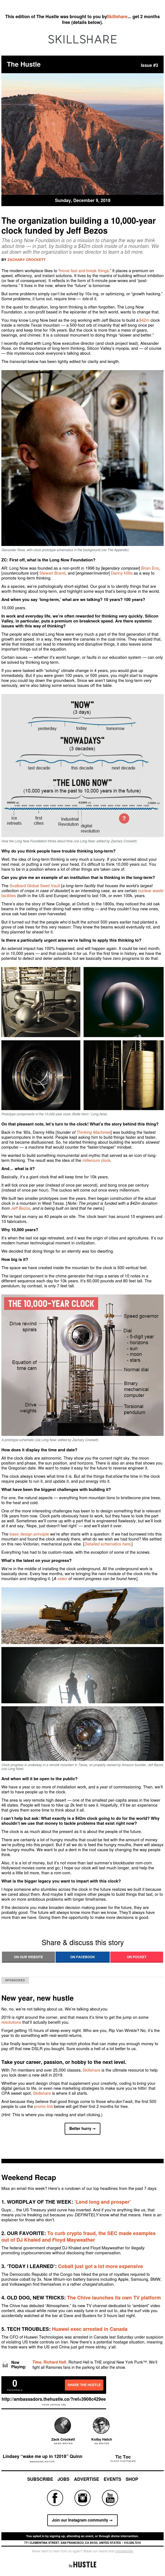 Are you thinking 10,000 years ahead?